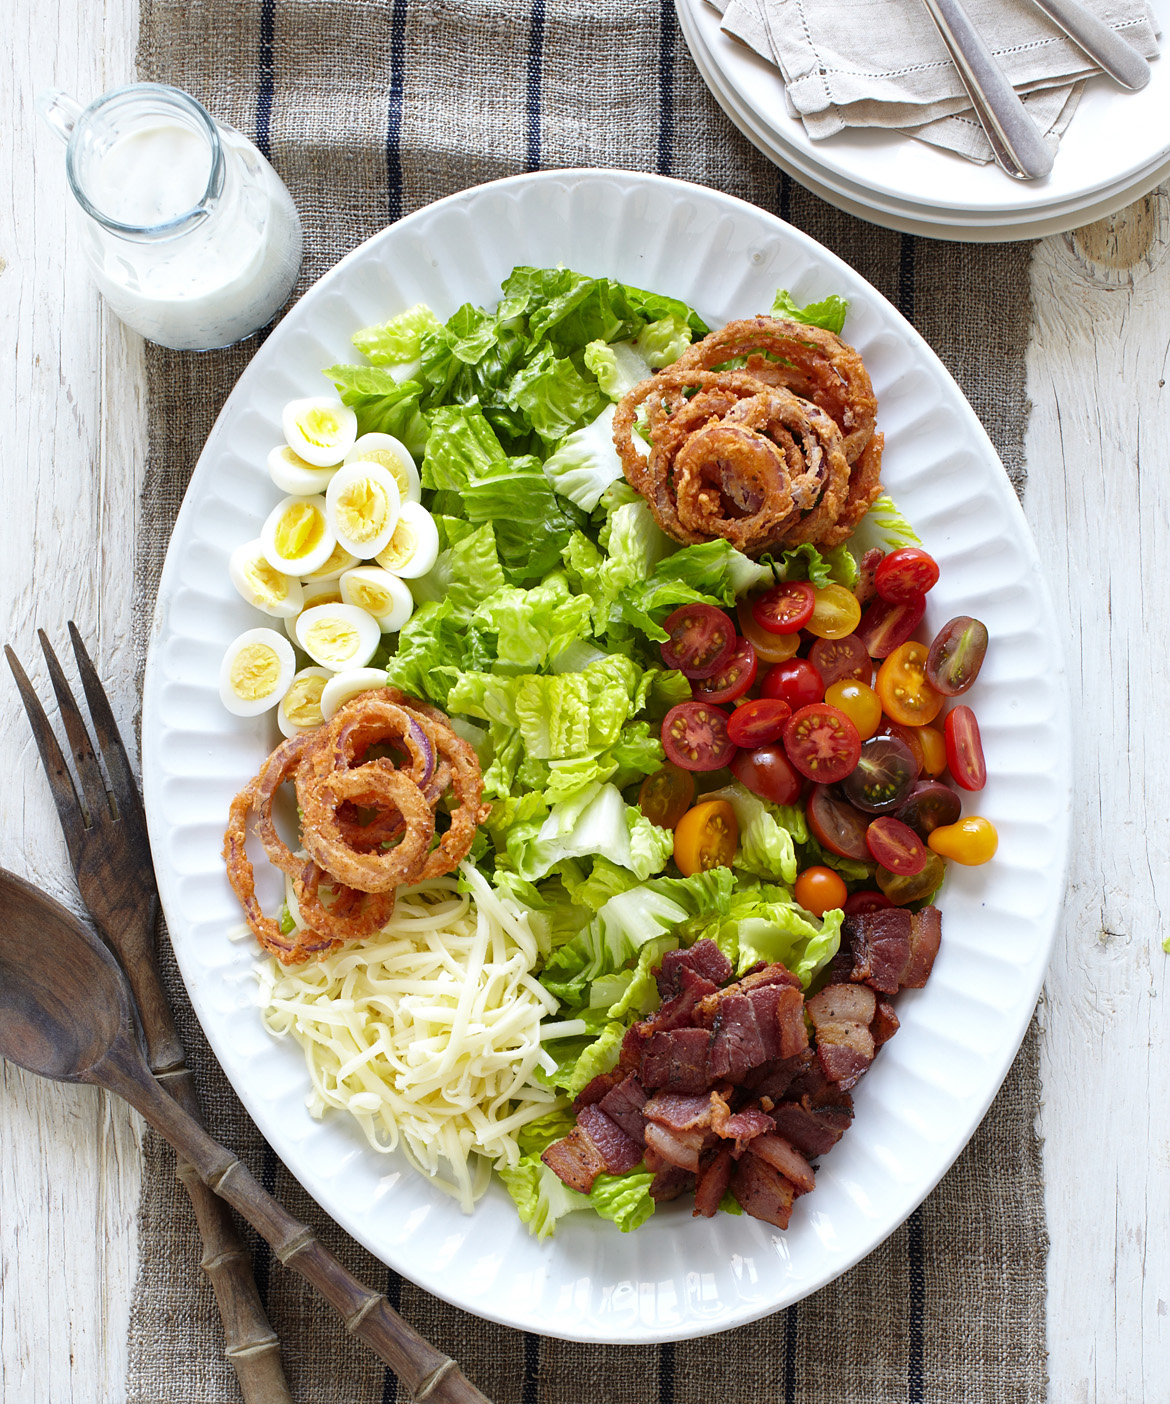 21-20100913_sc_southerncobbsalad_2507